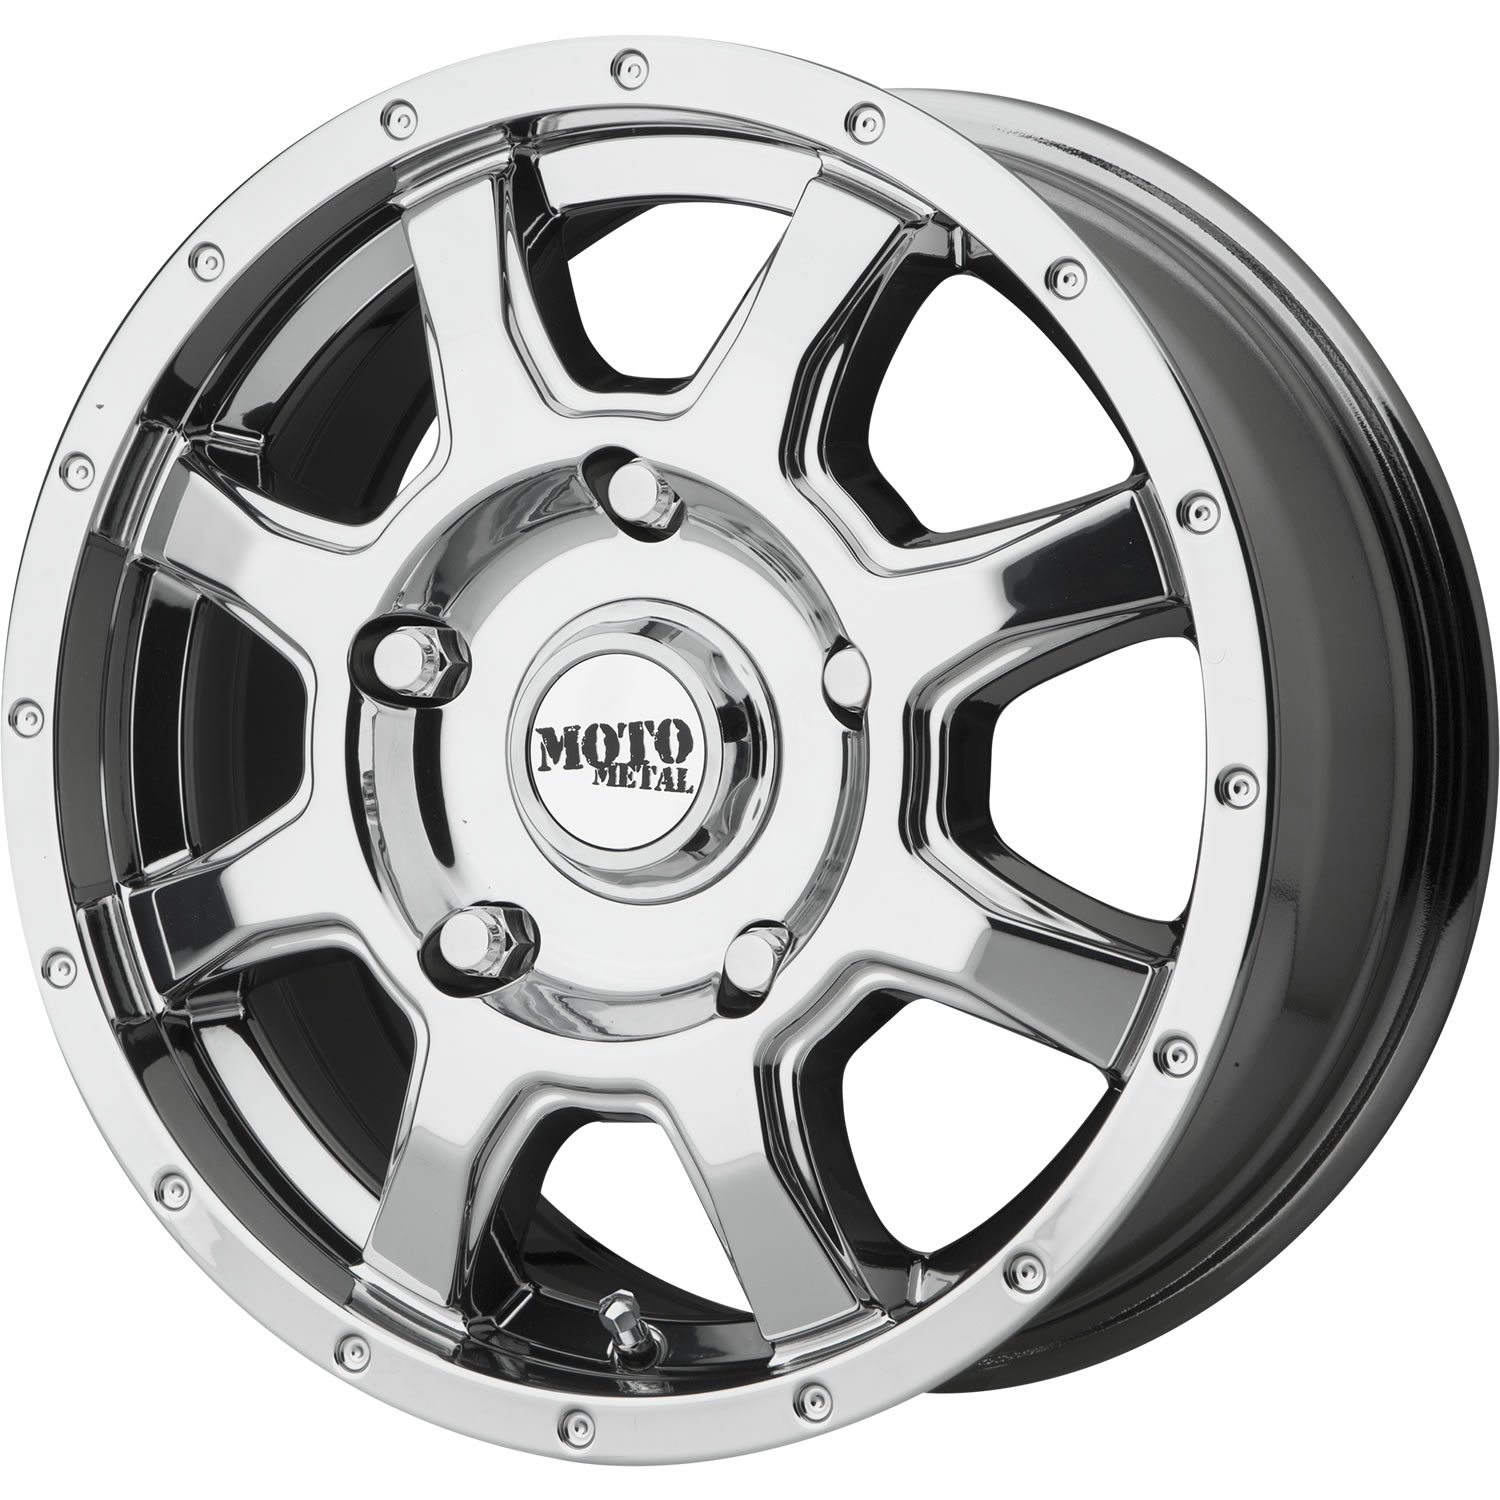 Moto Metal Mo970 17x8 50 Custom Wheels